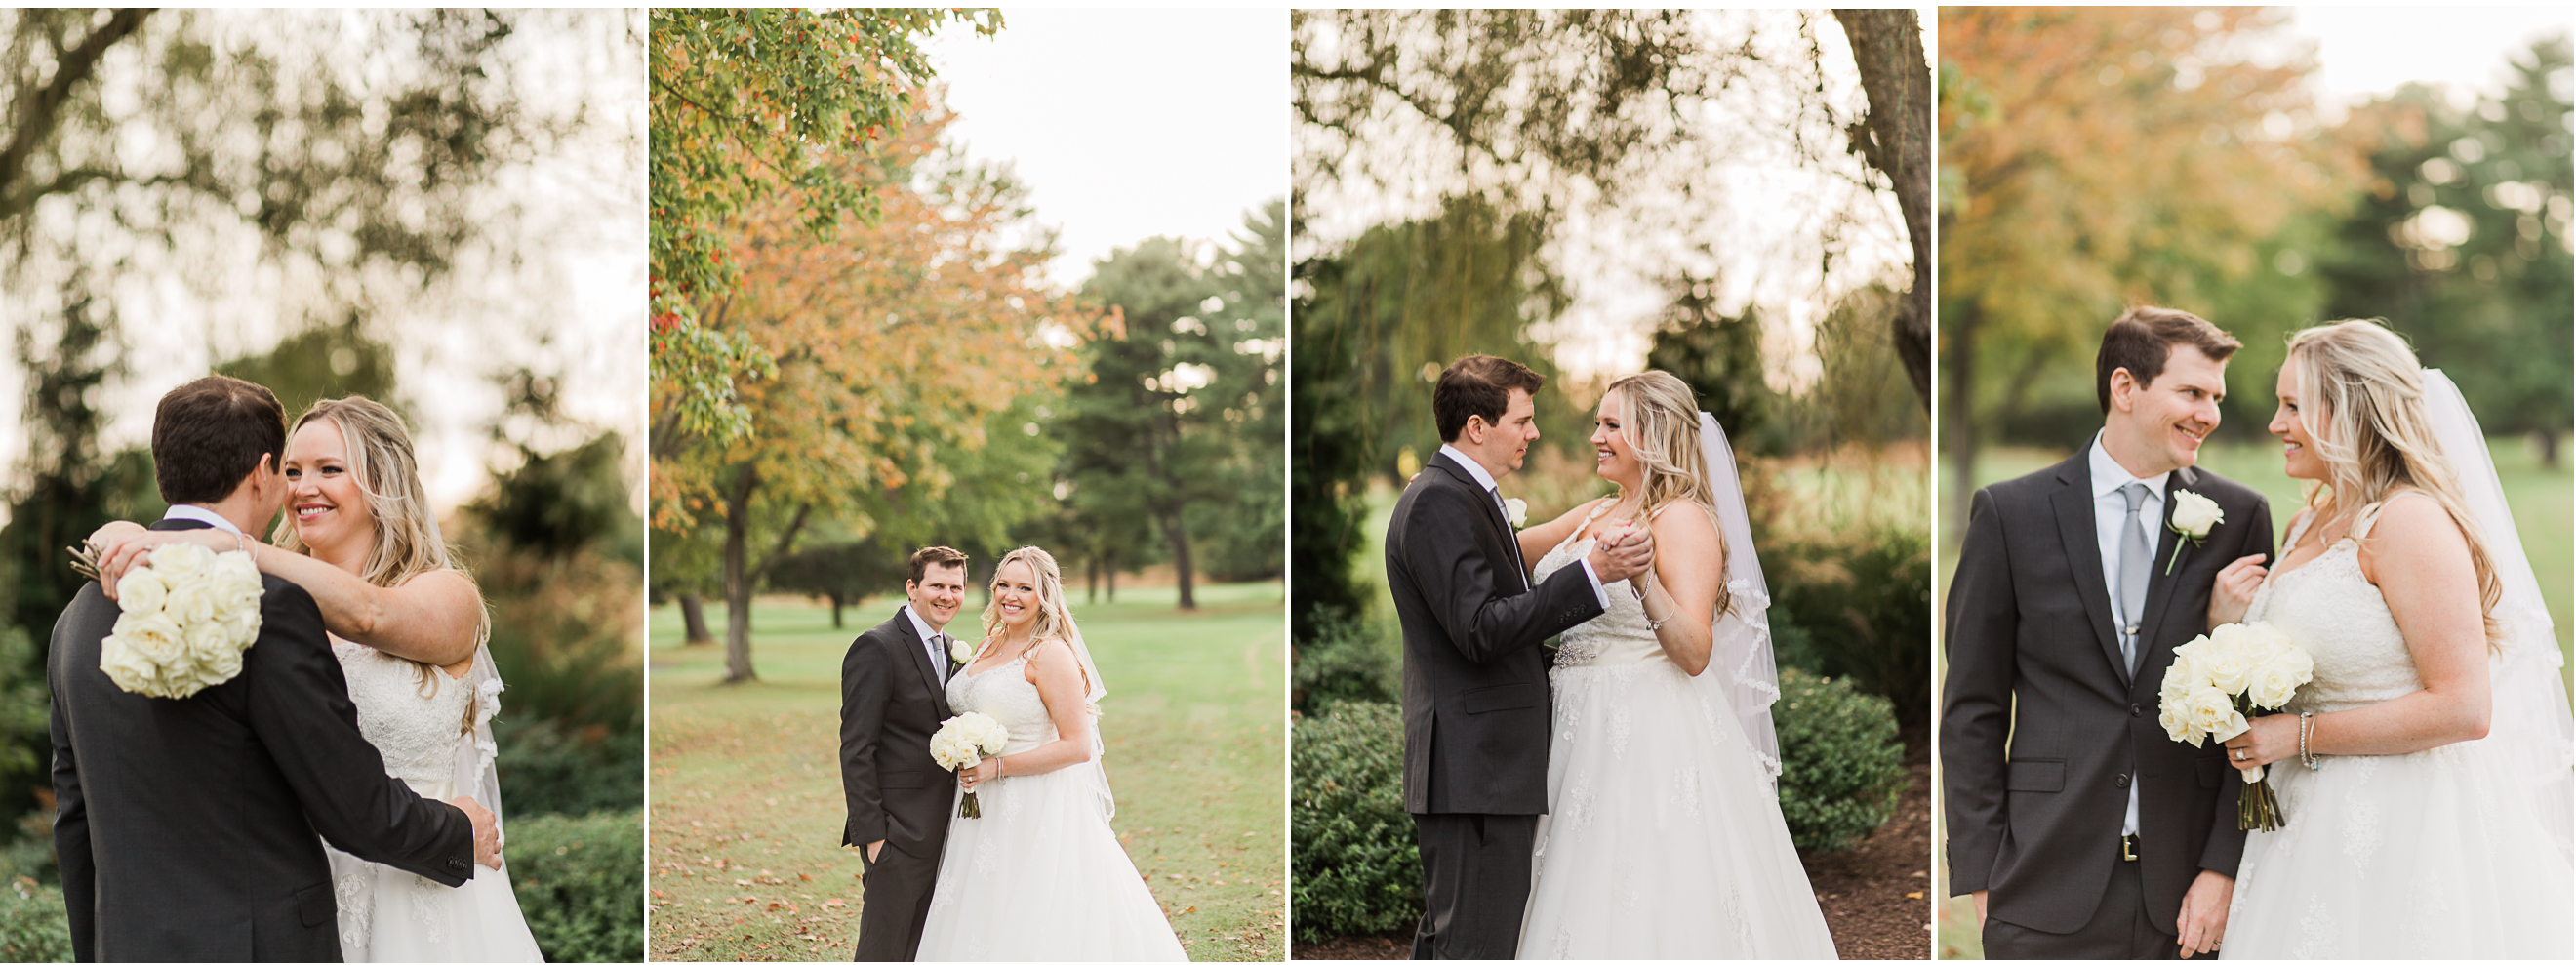 Kait Bailey Photography Turf Valley Resort Maryland Wedding Photographer